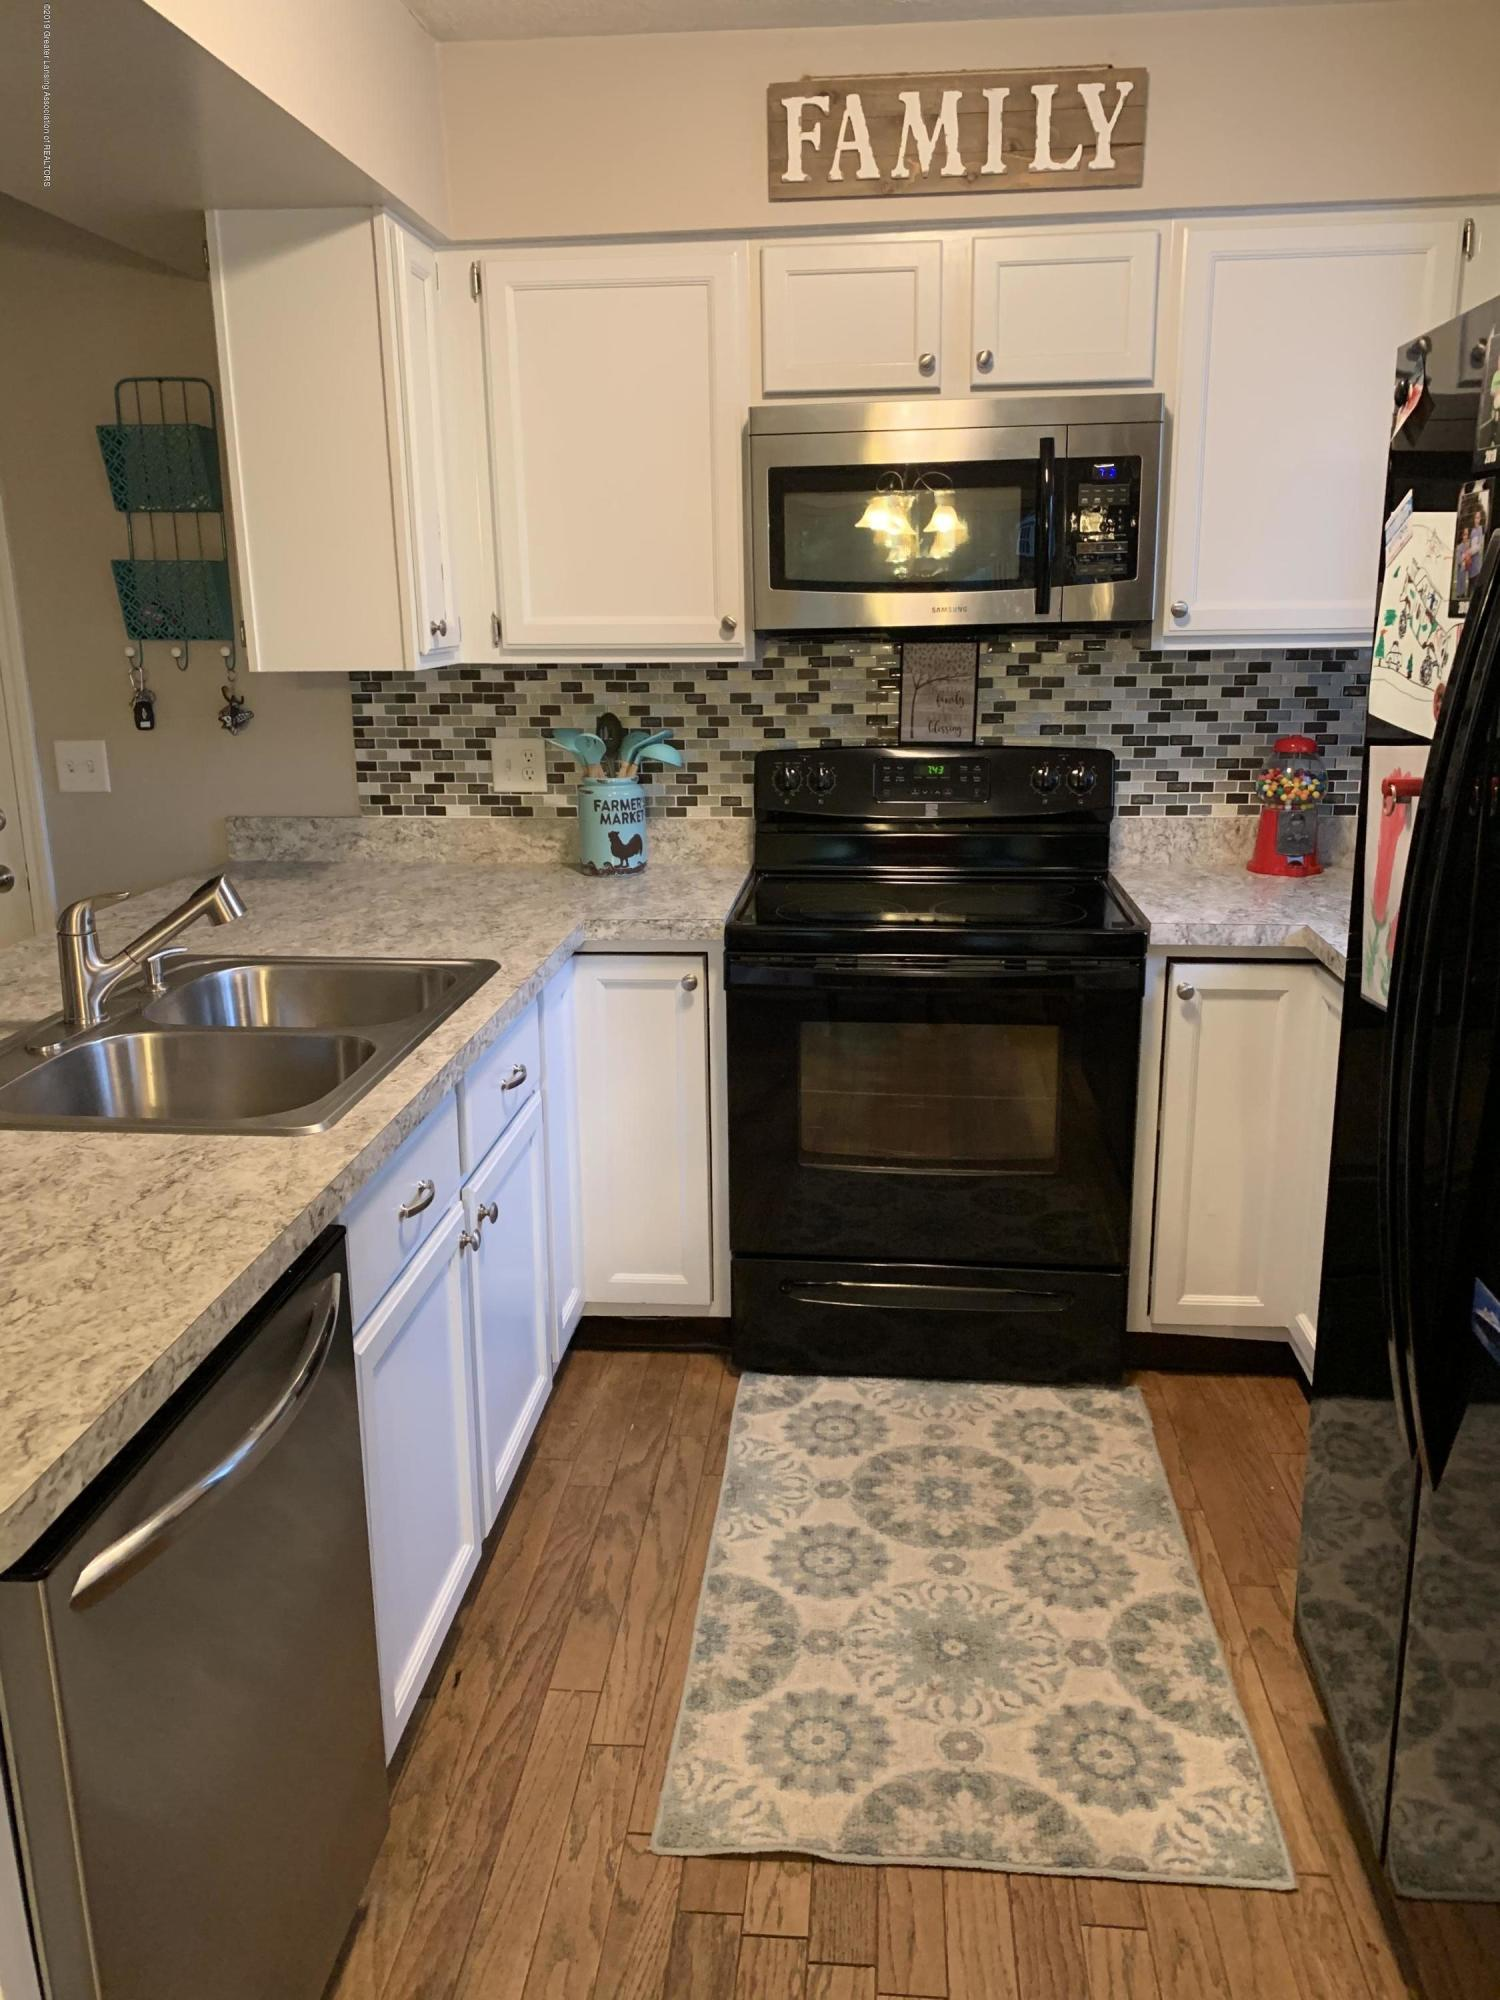 503 Manchester Dr - 503 Kitchen 2 - 11